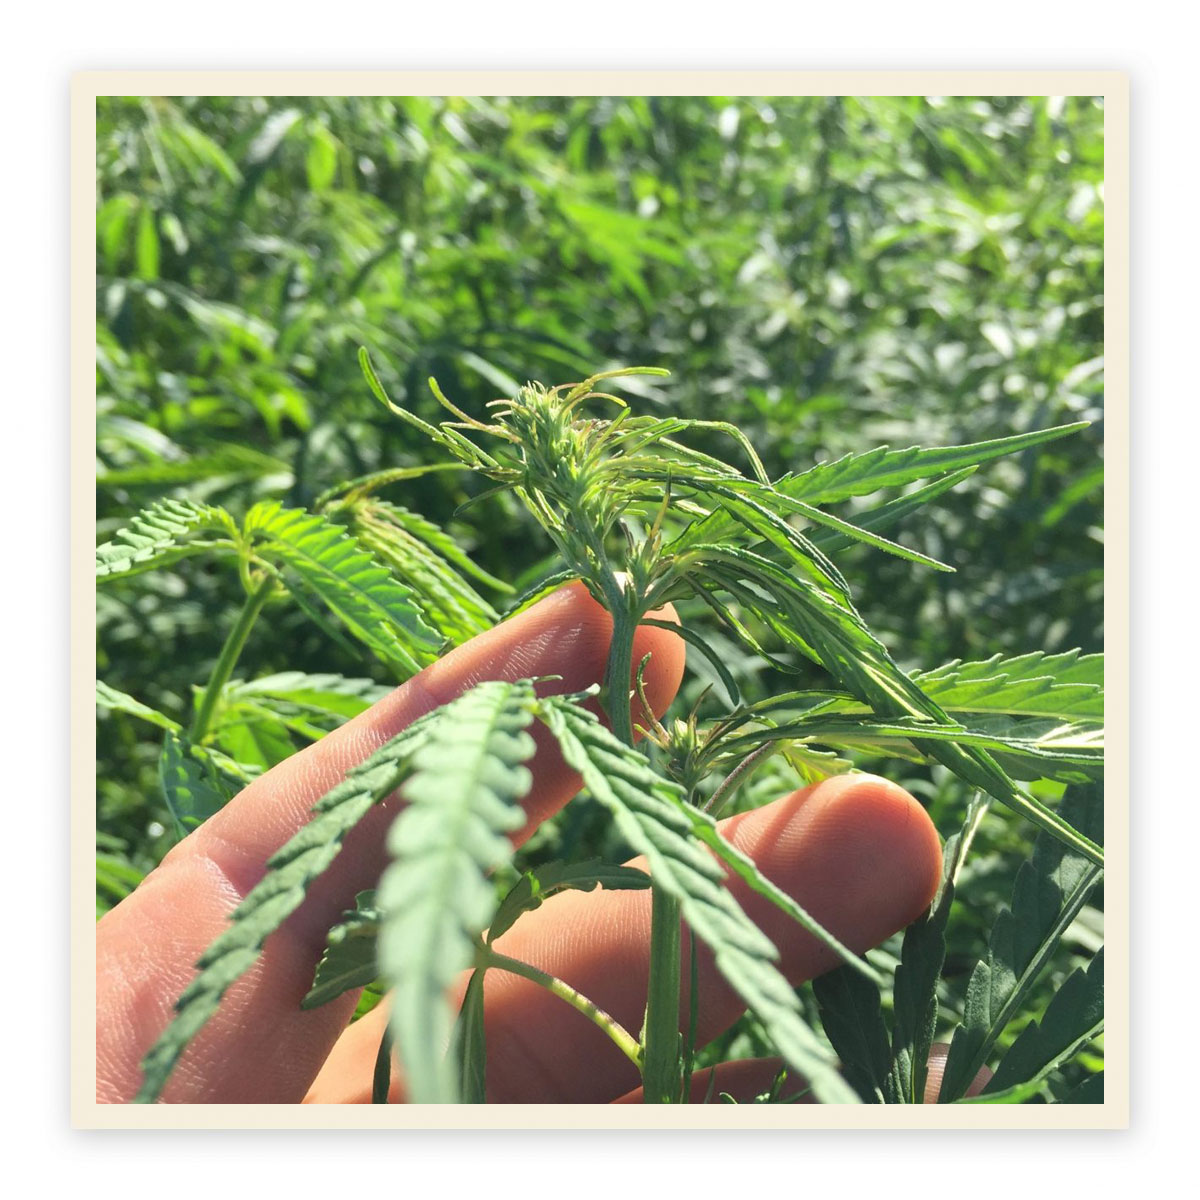 Industrial Hemp Project National-Cultivator Trial Scheme image of hemp close up